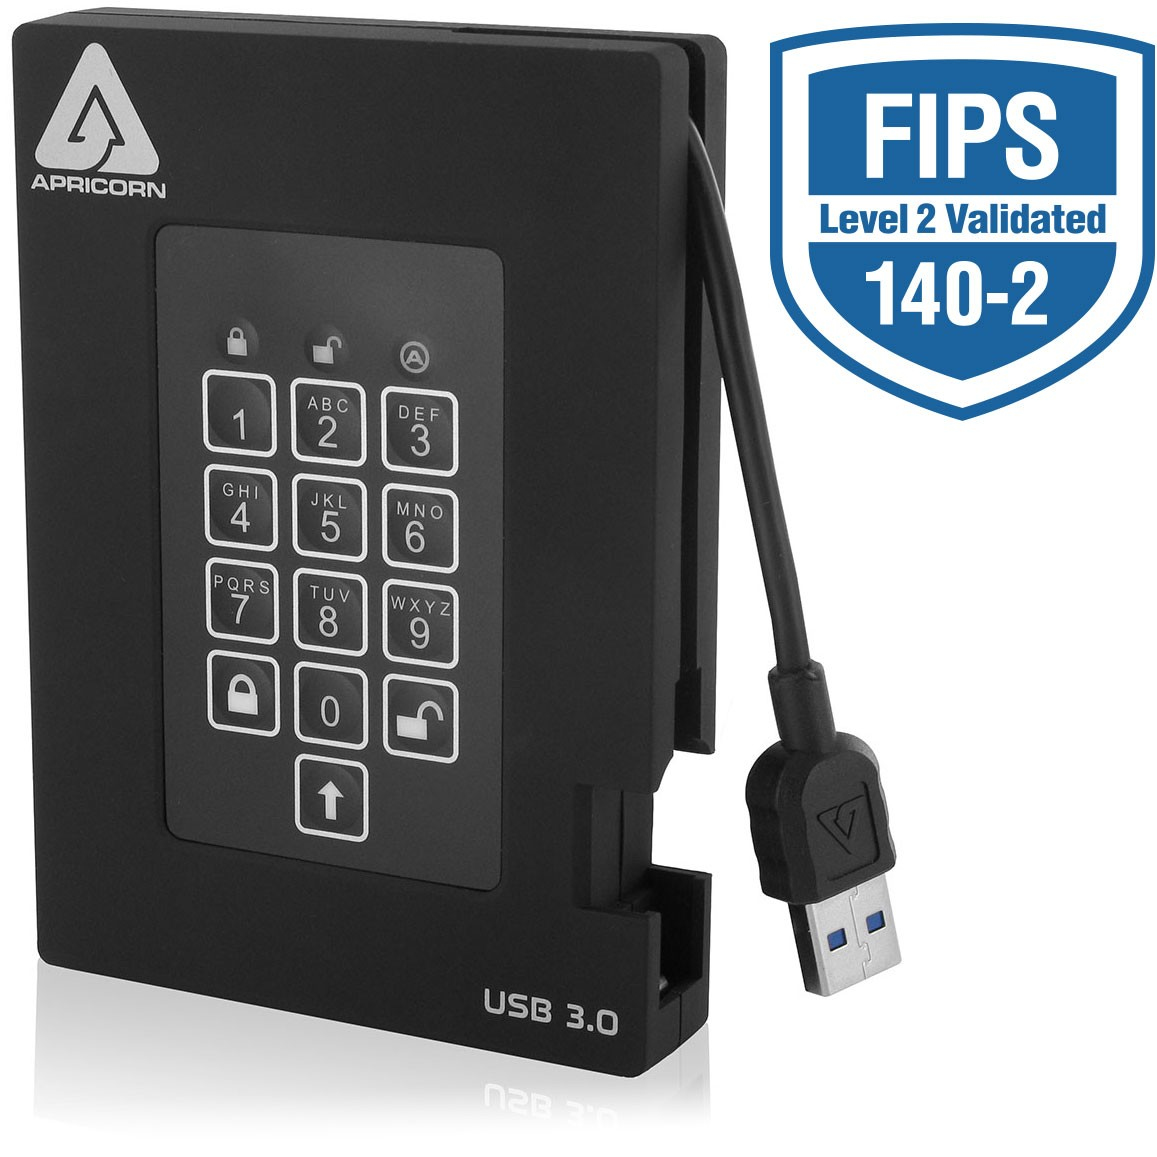 APRICORN A25-3PL256-2000F AEGIS PADLOCK FORTRESS 2000GB BLACK EXTERNAL HARD DRIVE